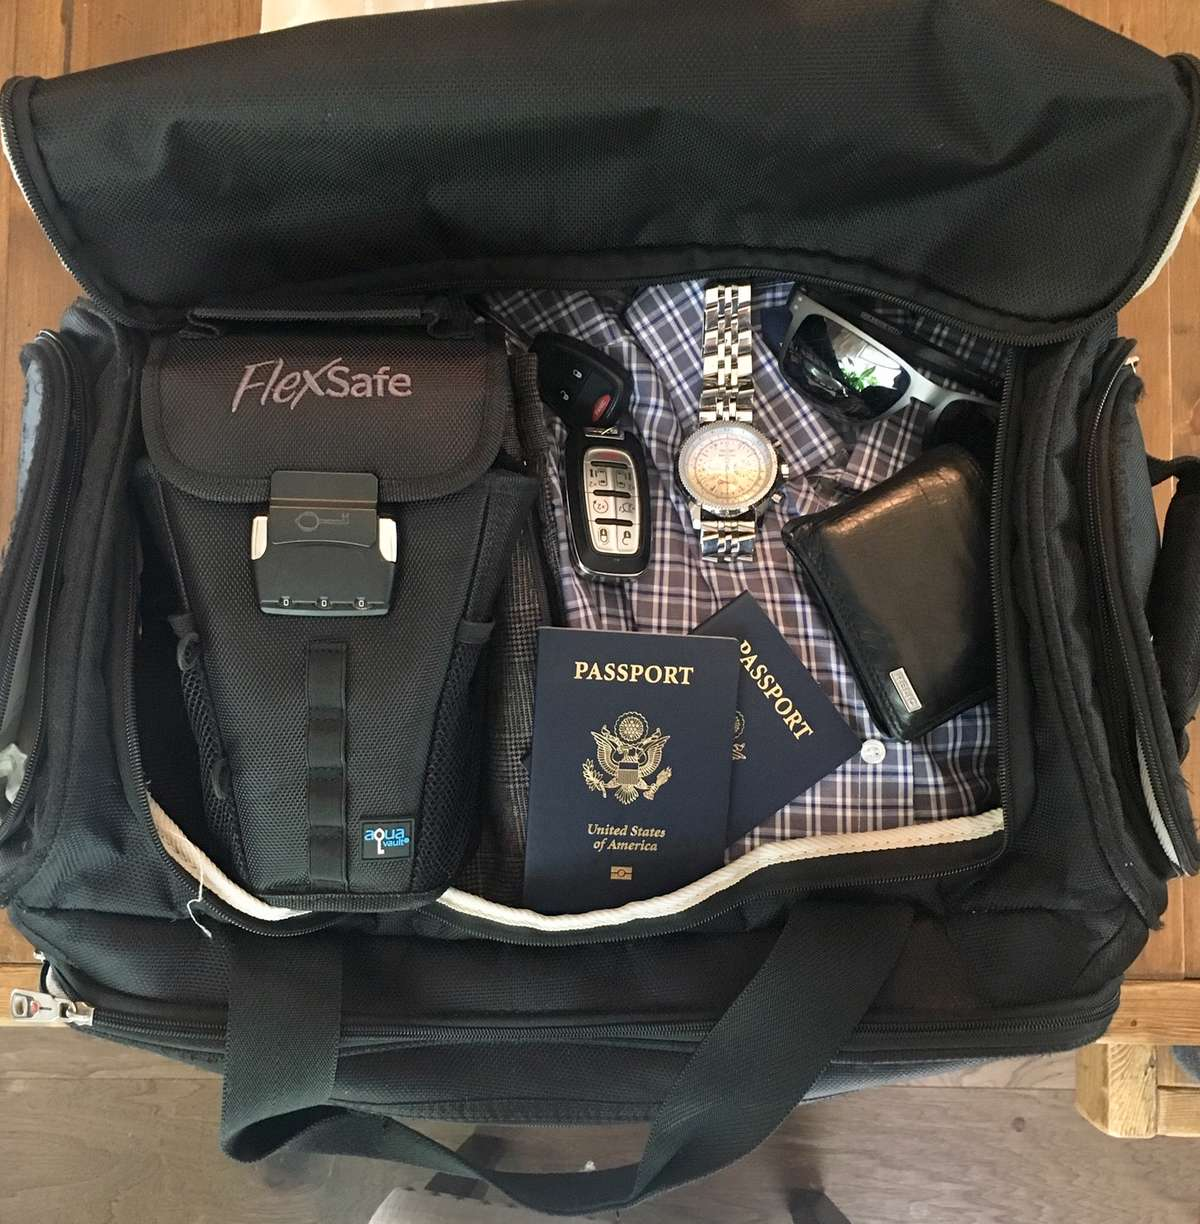 FlexSafe is So Easy To Pack